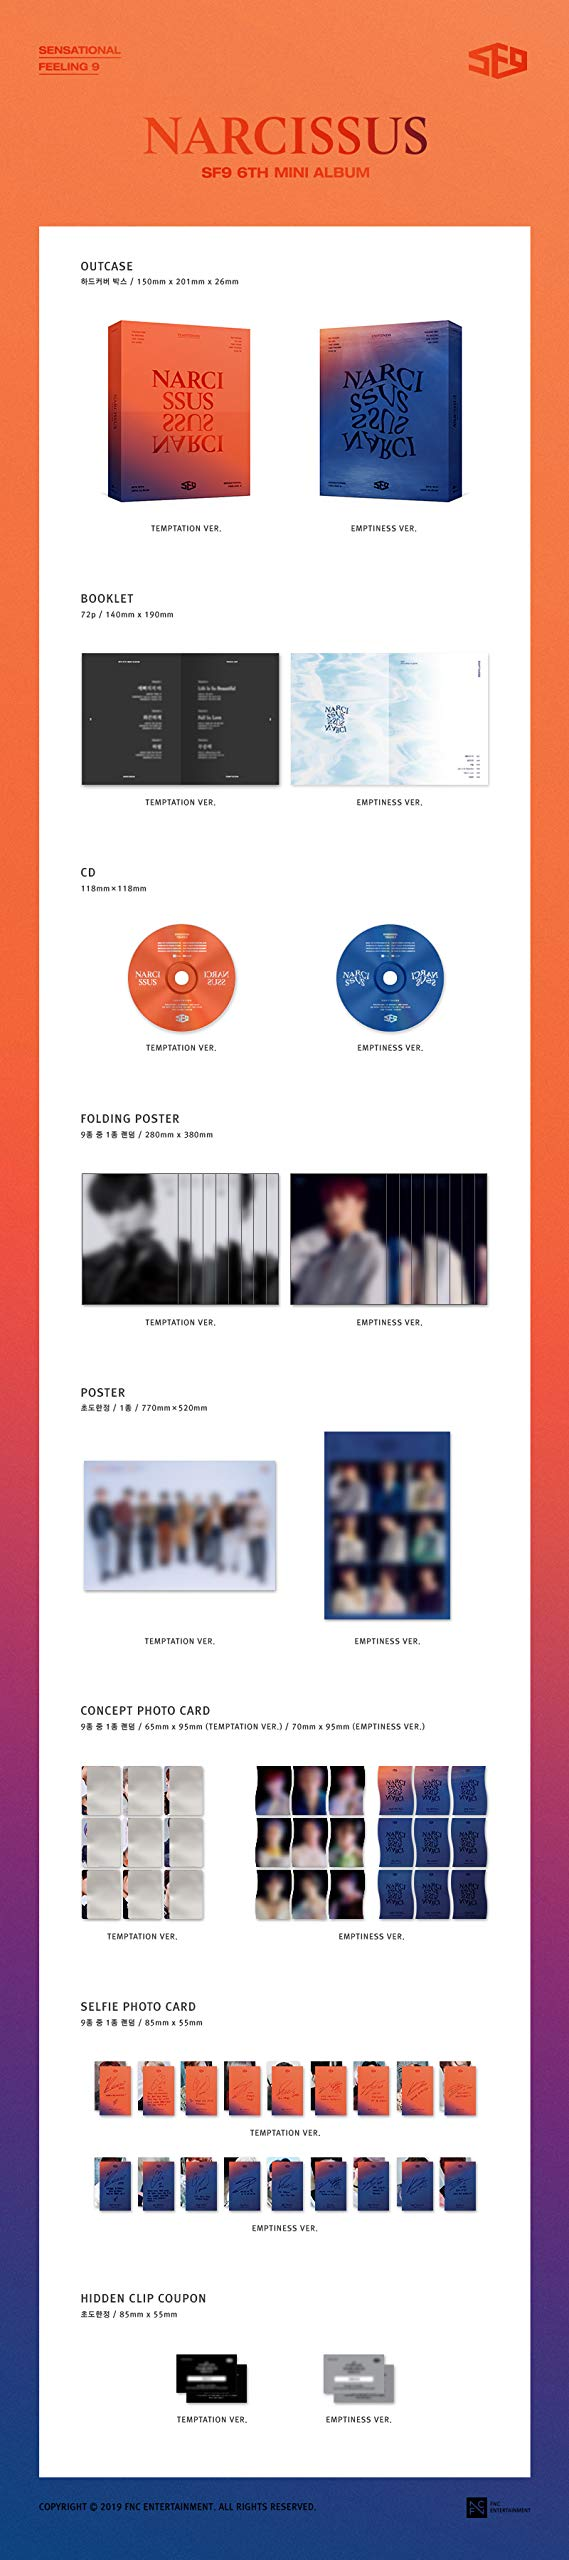 K-POP SF9 - 6th Mini Album [Narcissus] (Temptation version) Music CD + 72p Booklet + Concept Photocard + Selfie Photocard + On Pack Poster + Folded Poster + Extra Photocards 4pc + Tracking No by FNC Entertainment